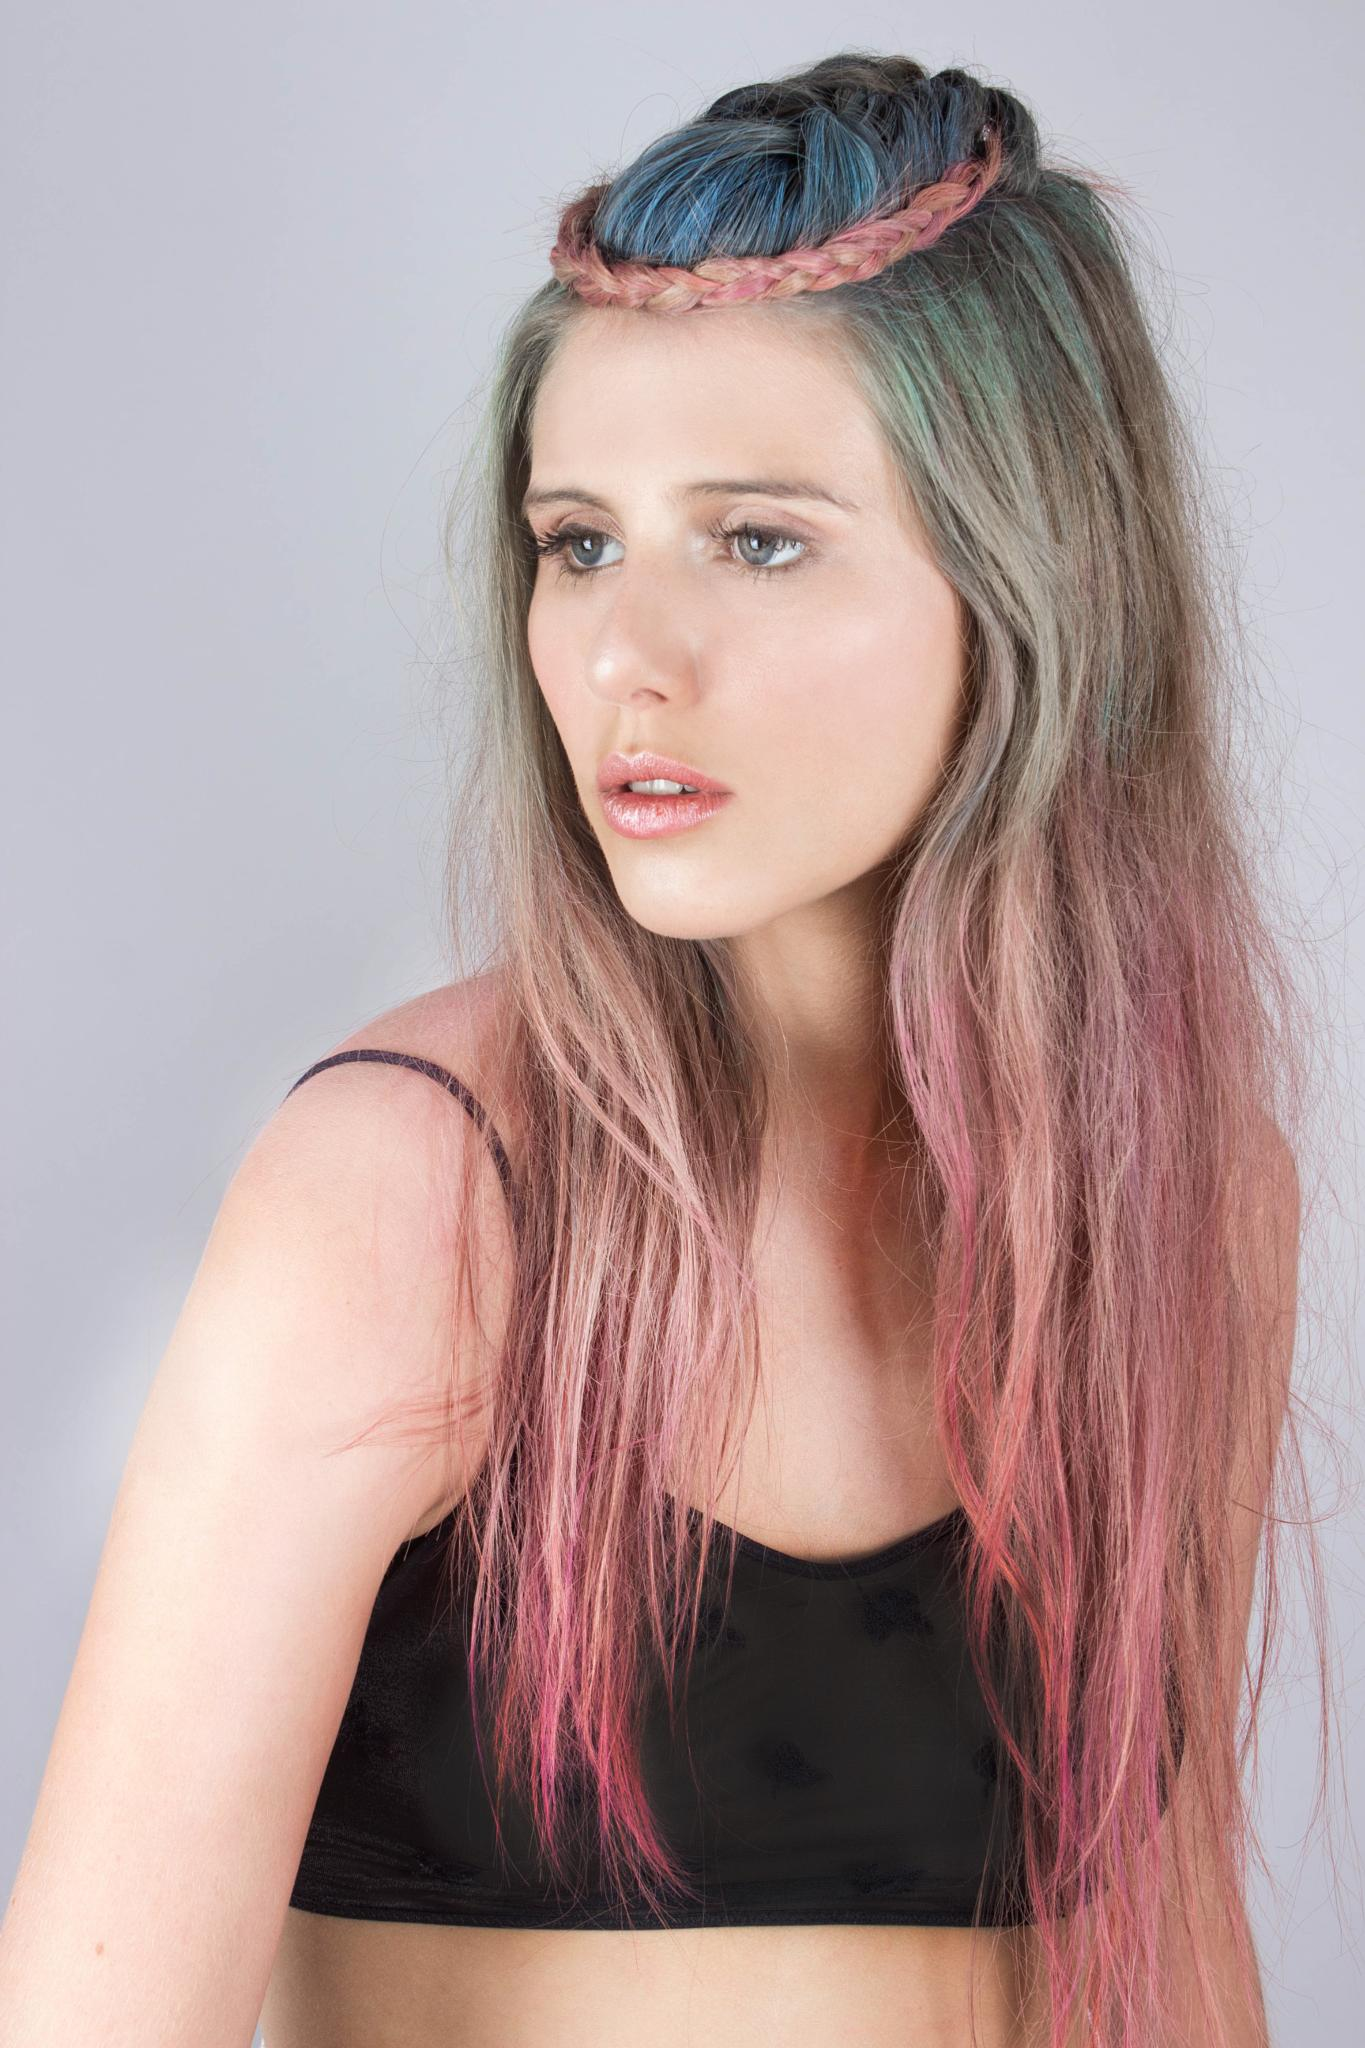 RainbowHair by Cristobal Thumala Oettinger